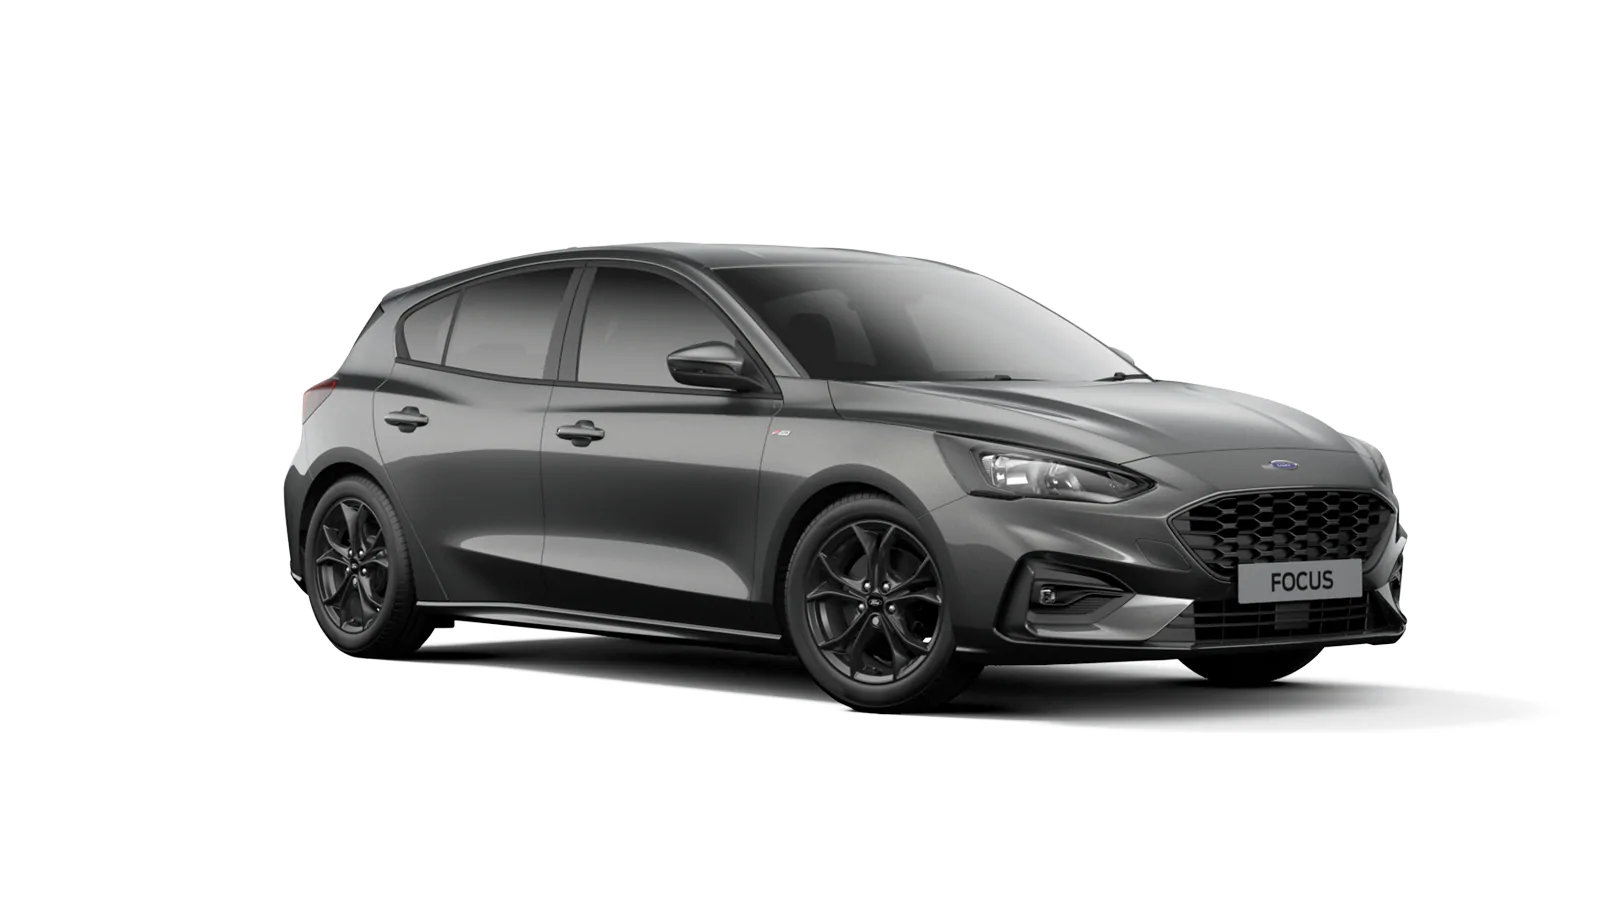 191 Ford Focus ST-Line 1.5TDCI, Boland Motors